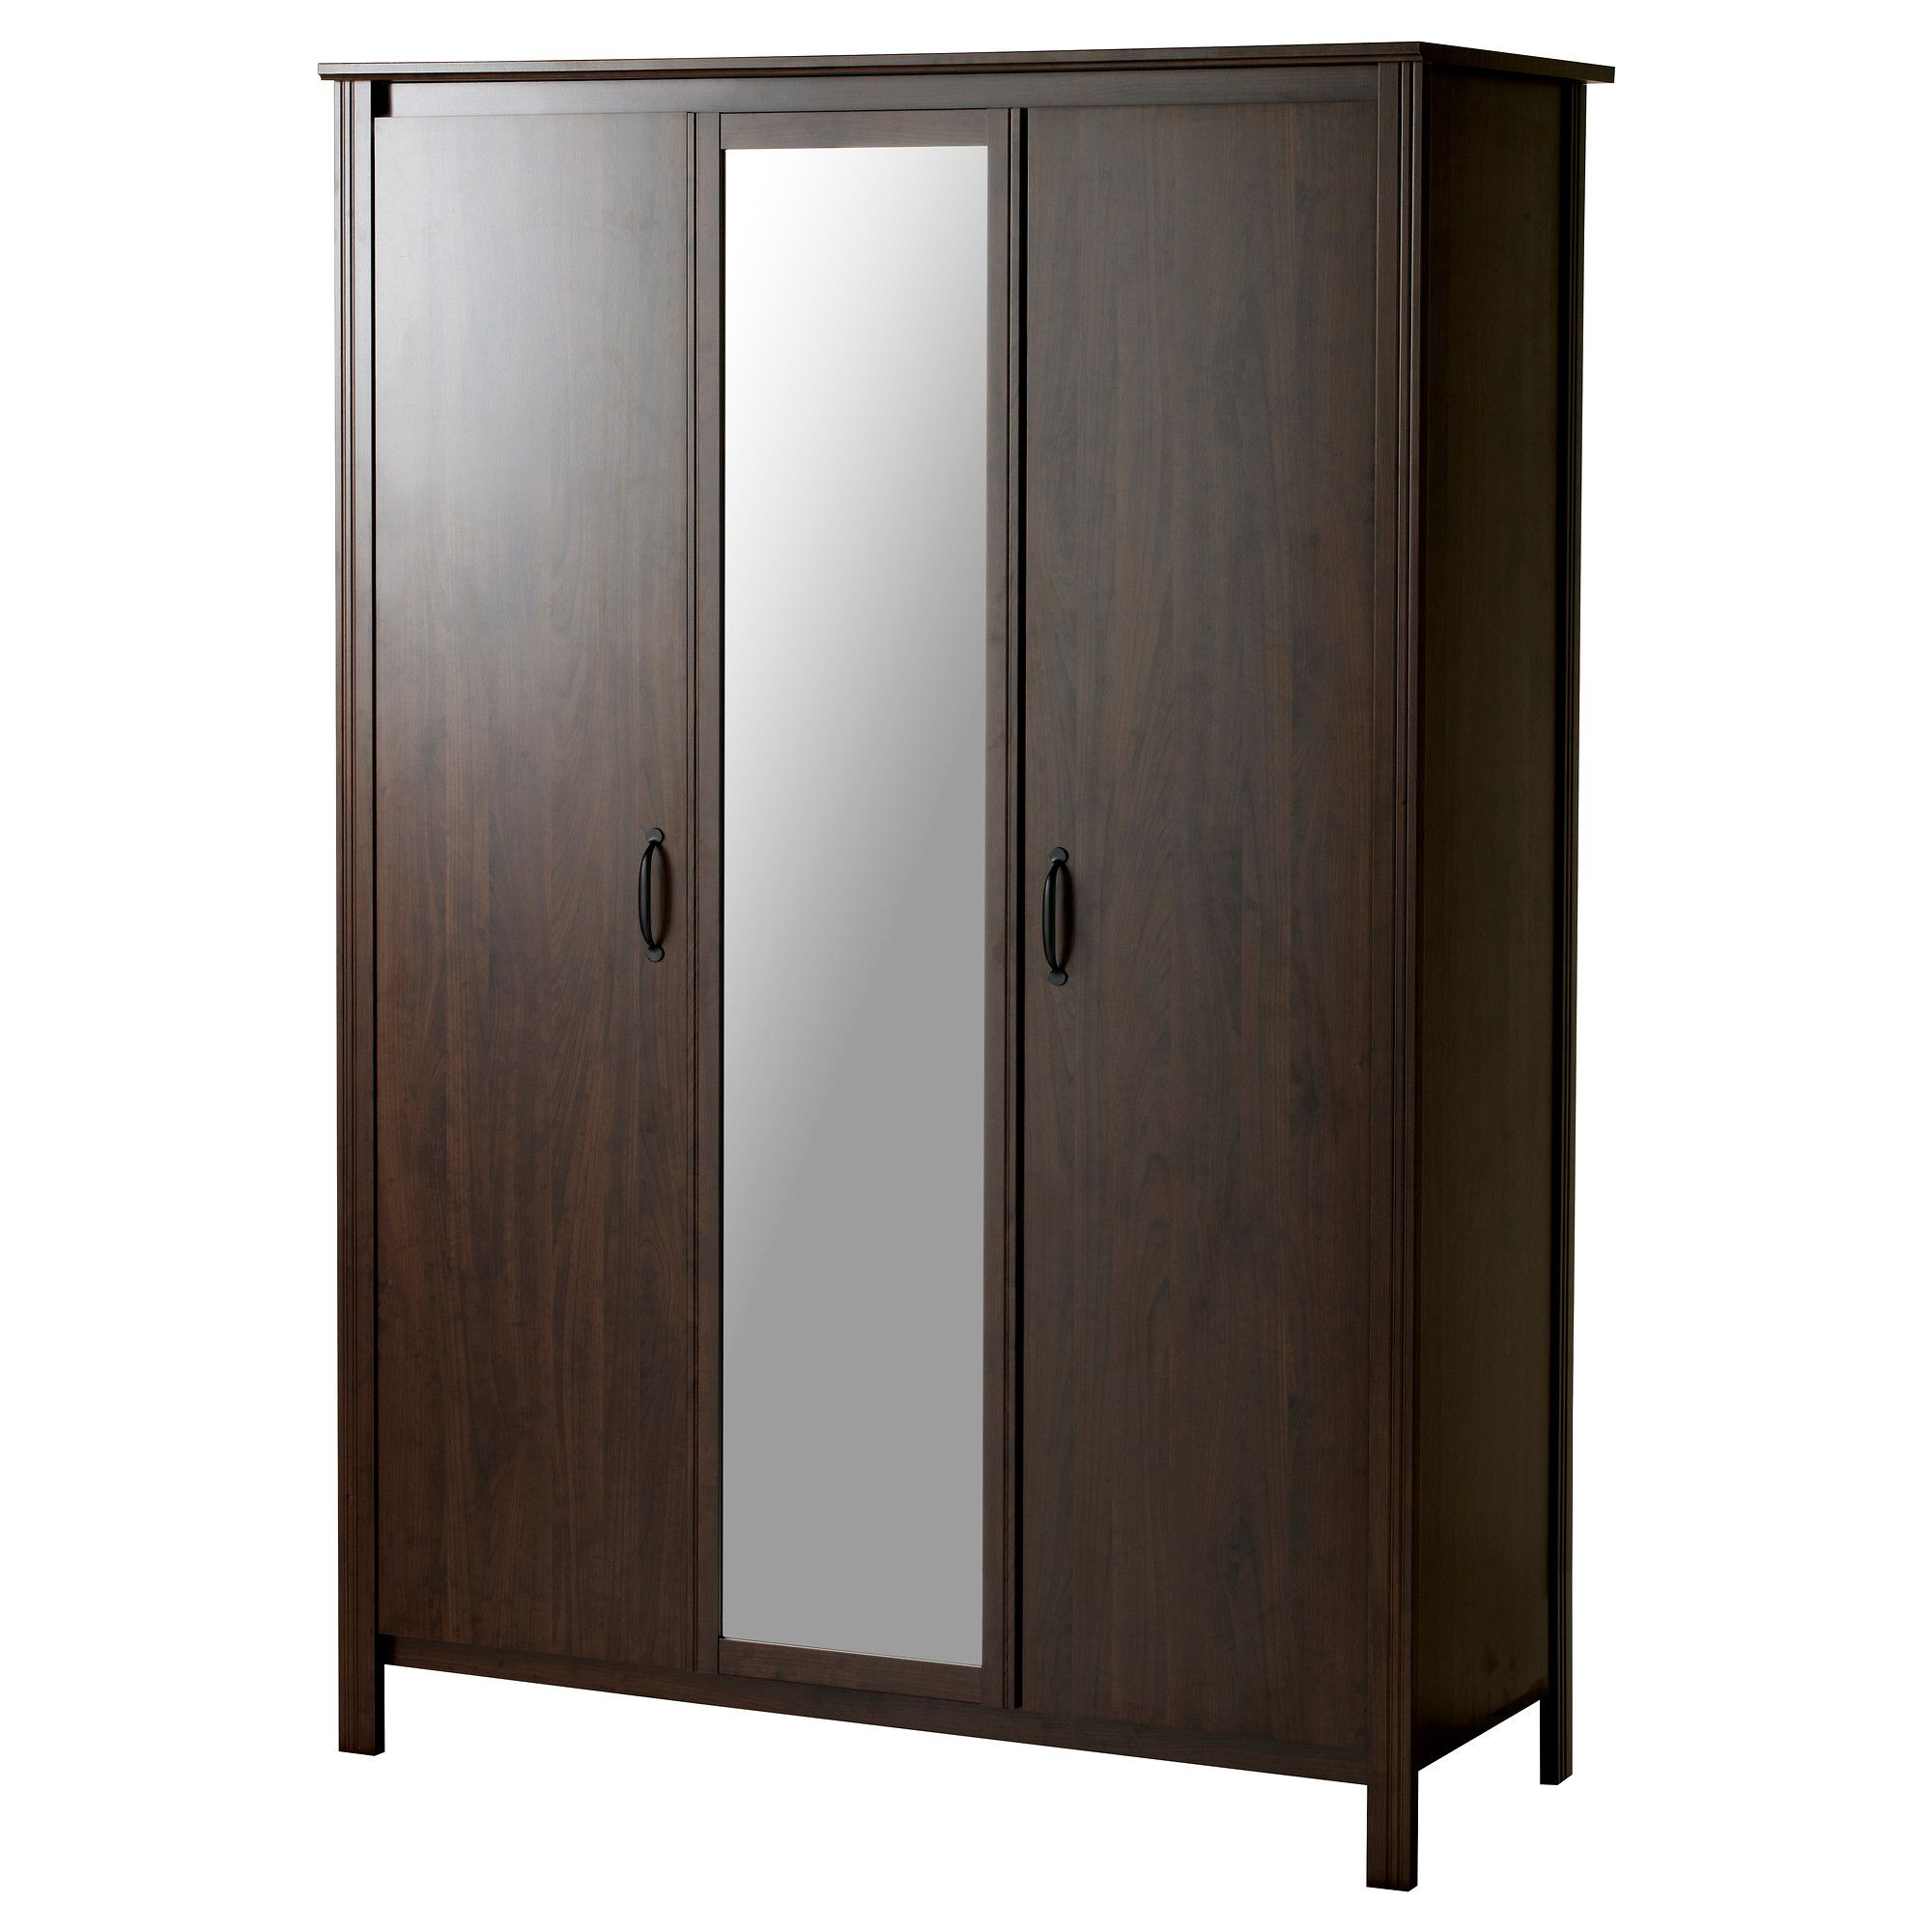 Brusali Wardrobe Furniture And Home Furnishings Great Design Ikea Wardrobe